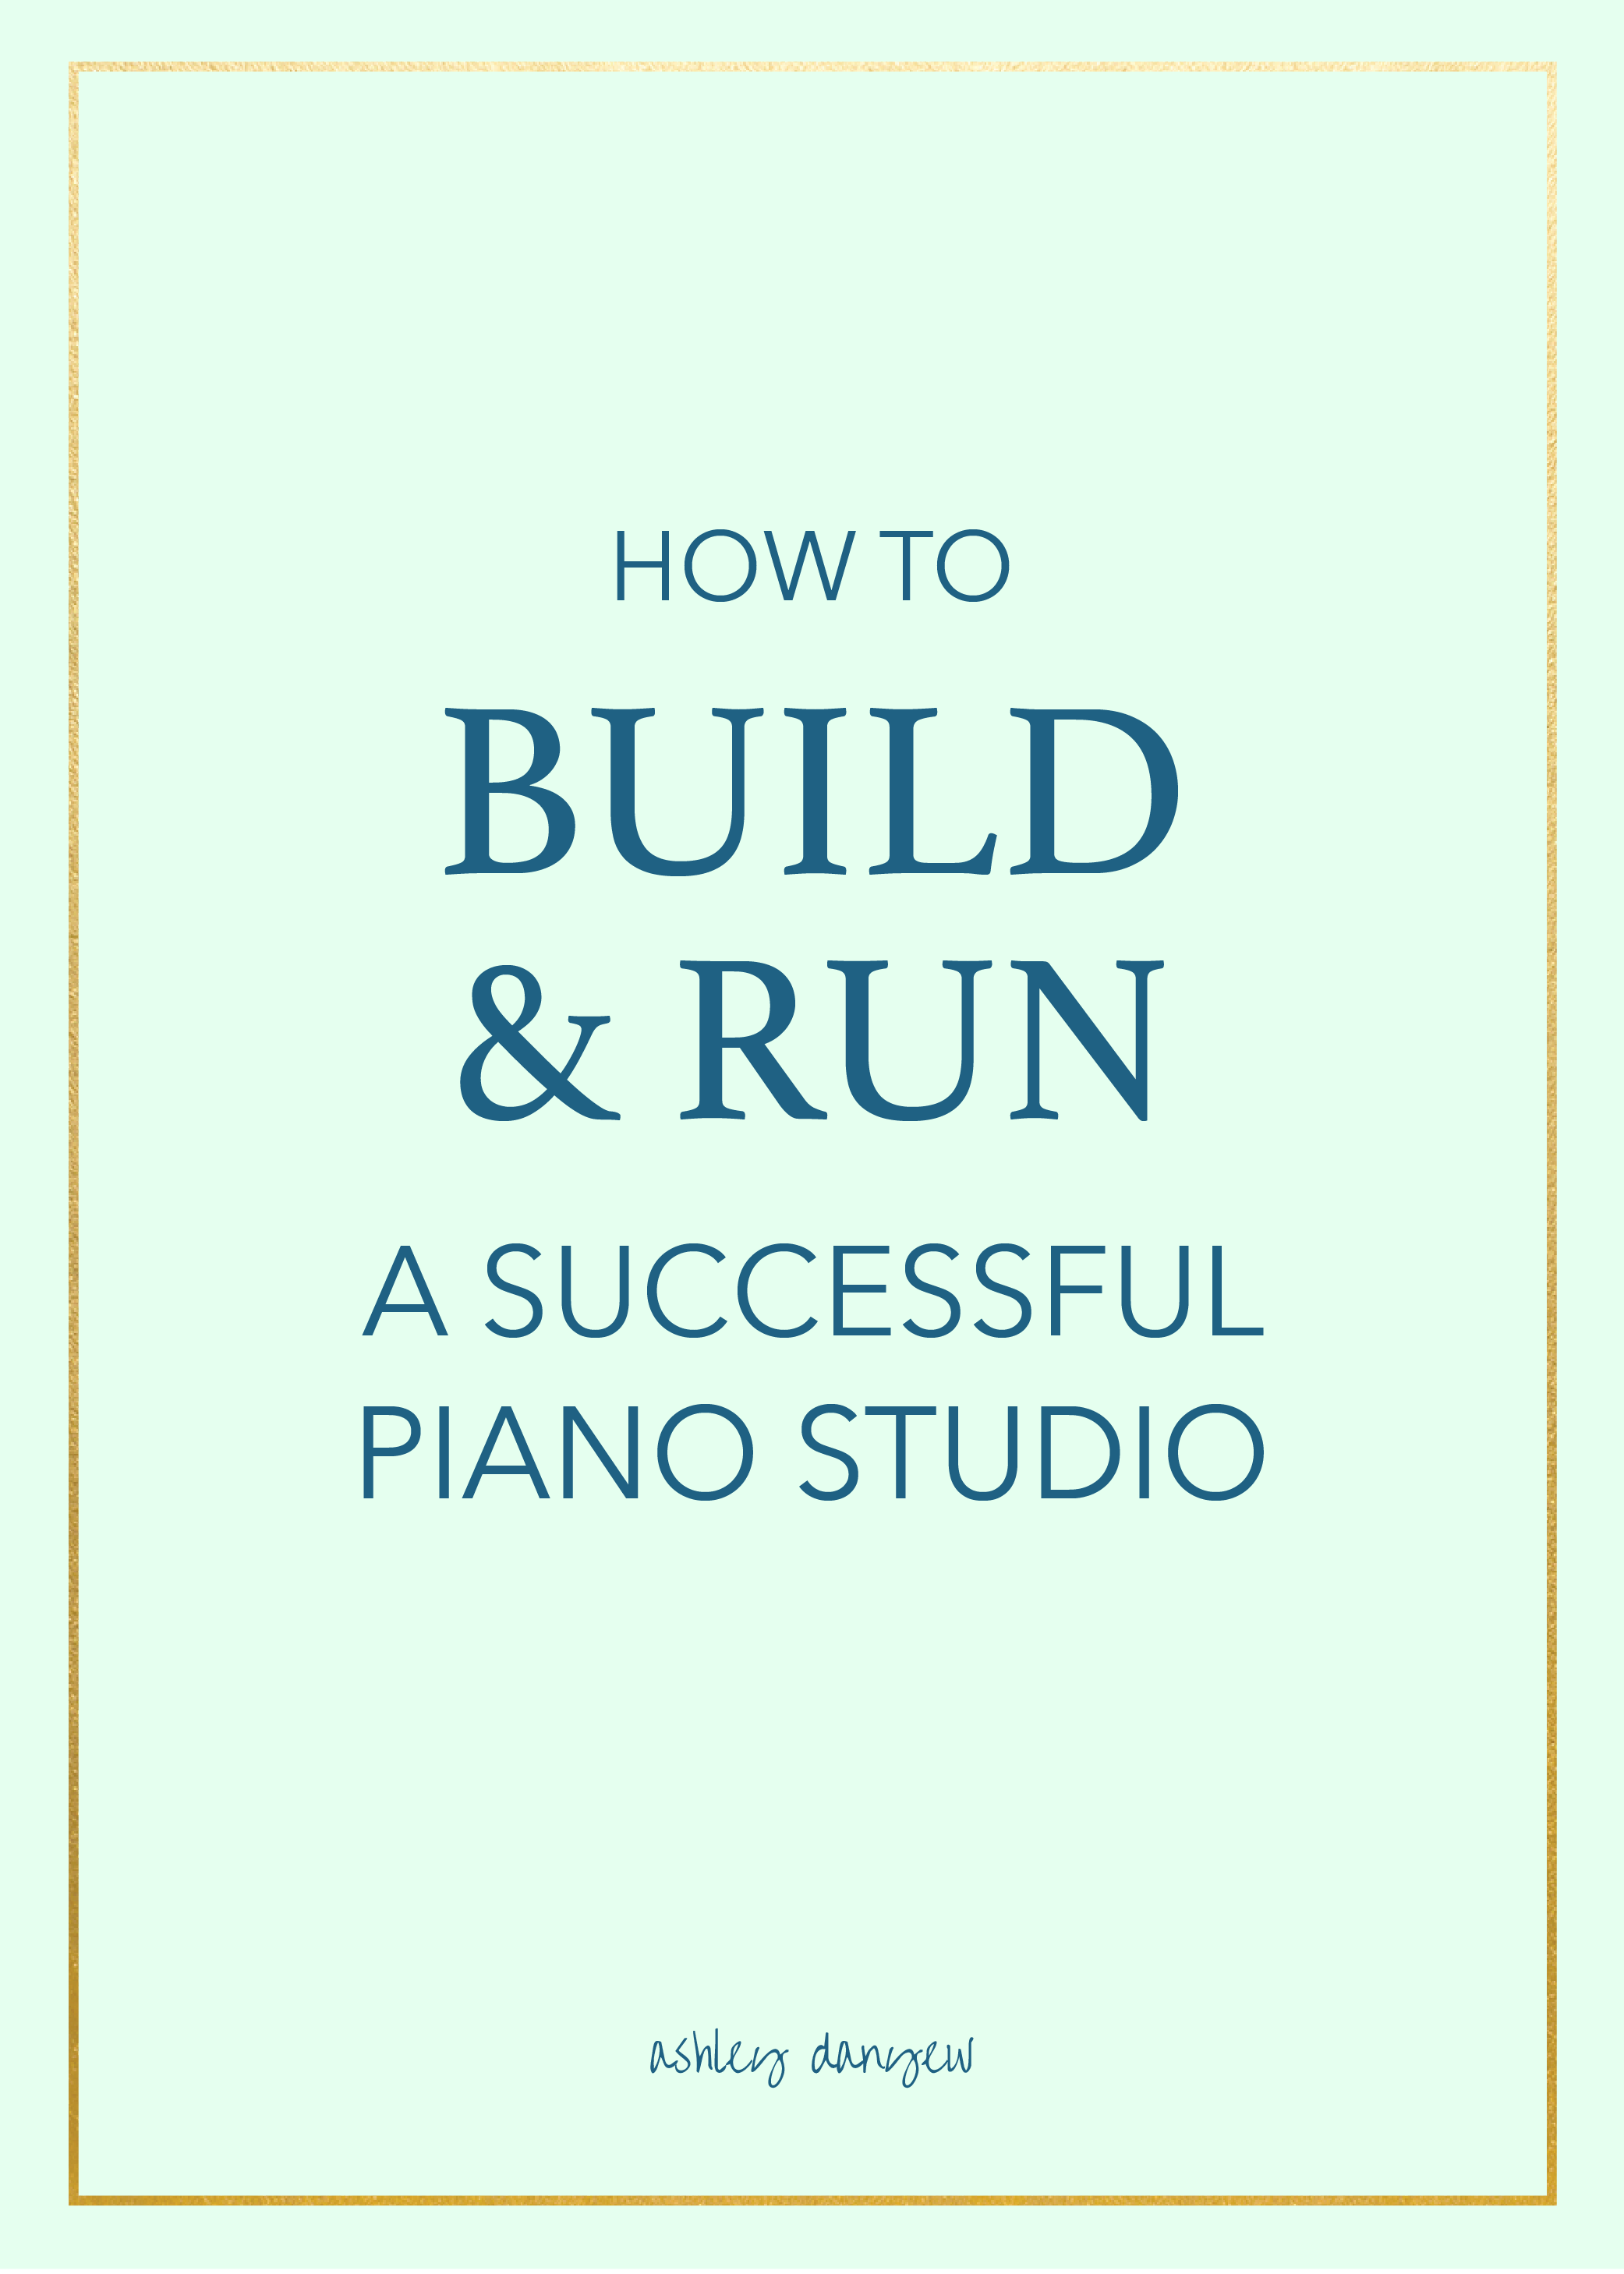 How-to-Build-and-Run-a-Successful-Piano-Studio-01.png